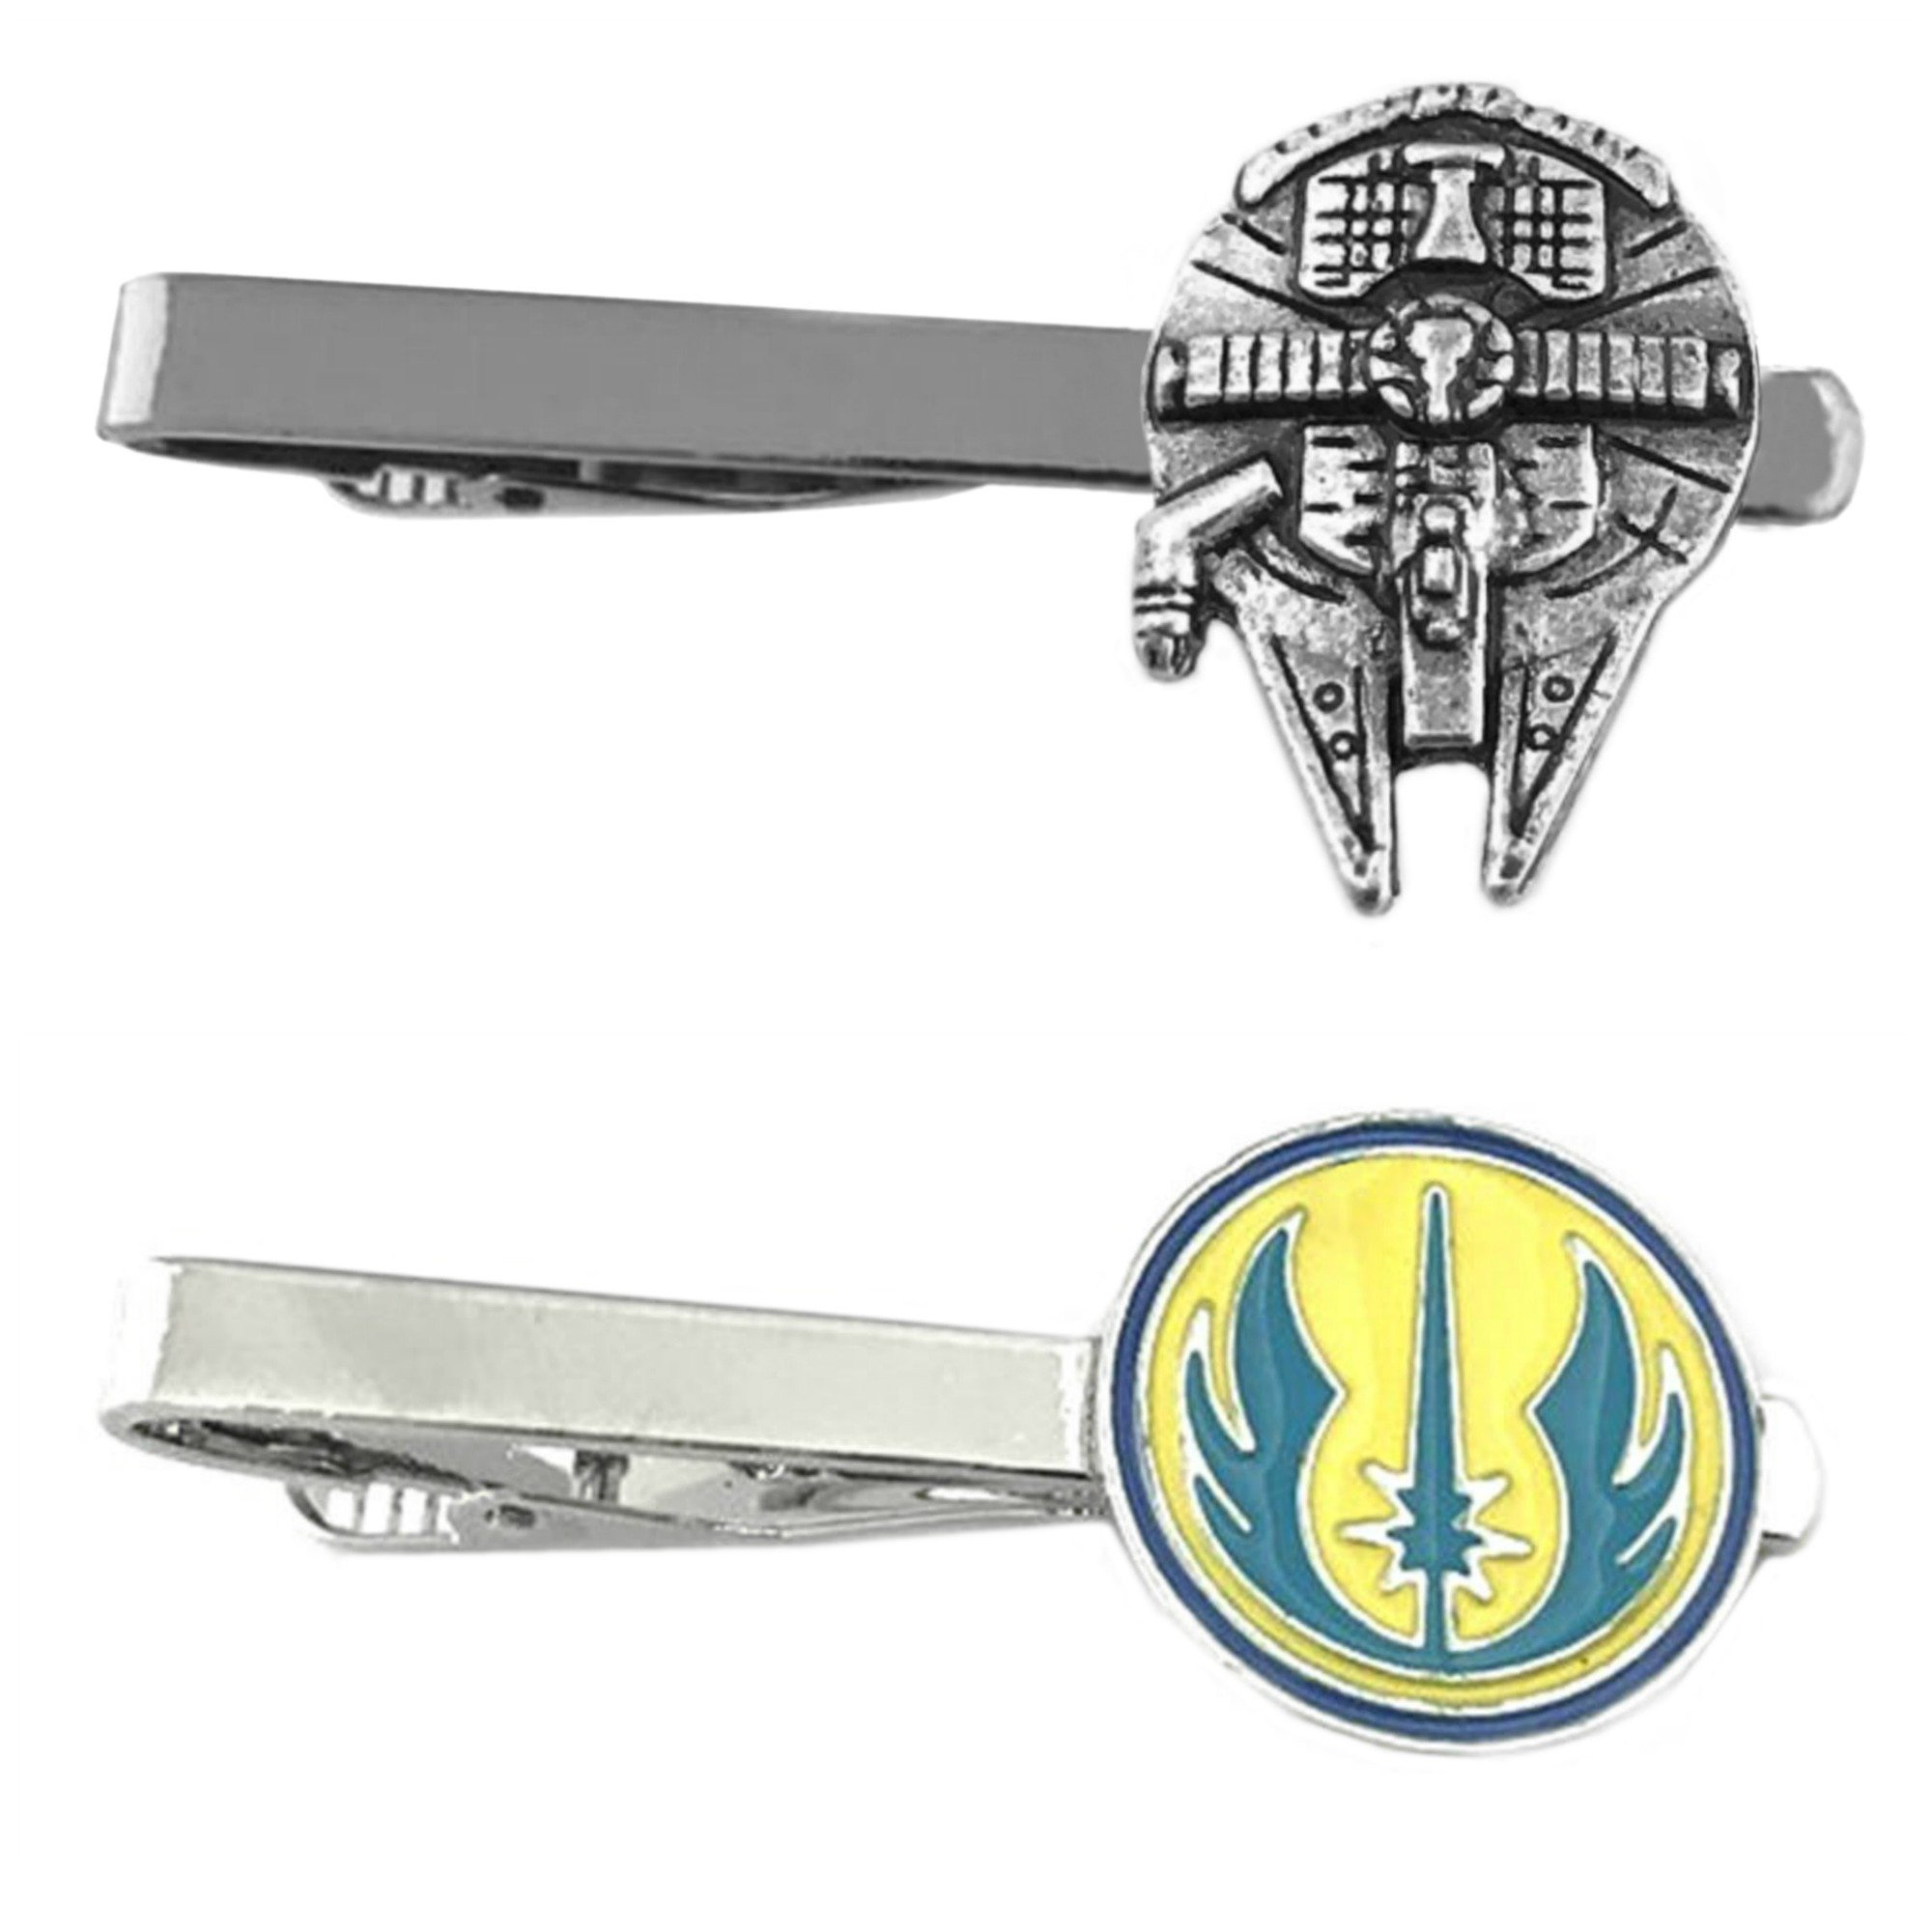 Outlander Star Wars - Millenium Falcon & Jedi - Tiebar Tie Clasp Set of 2 Wedding Superhero Logo w/Gift Box